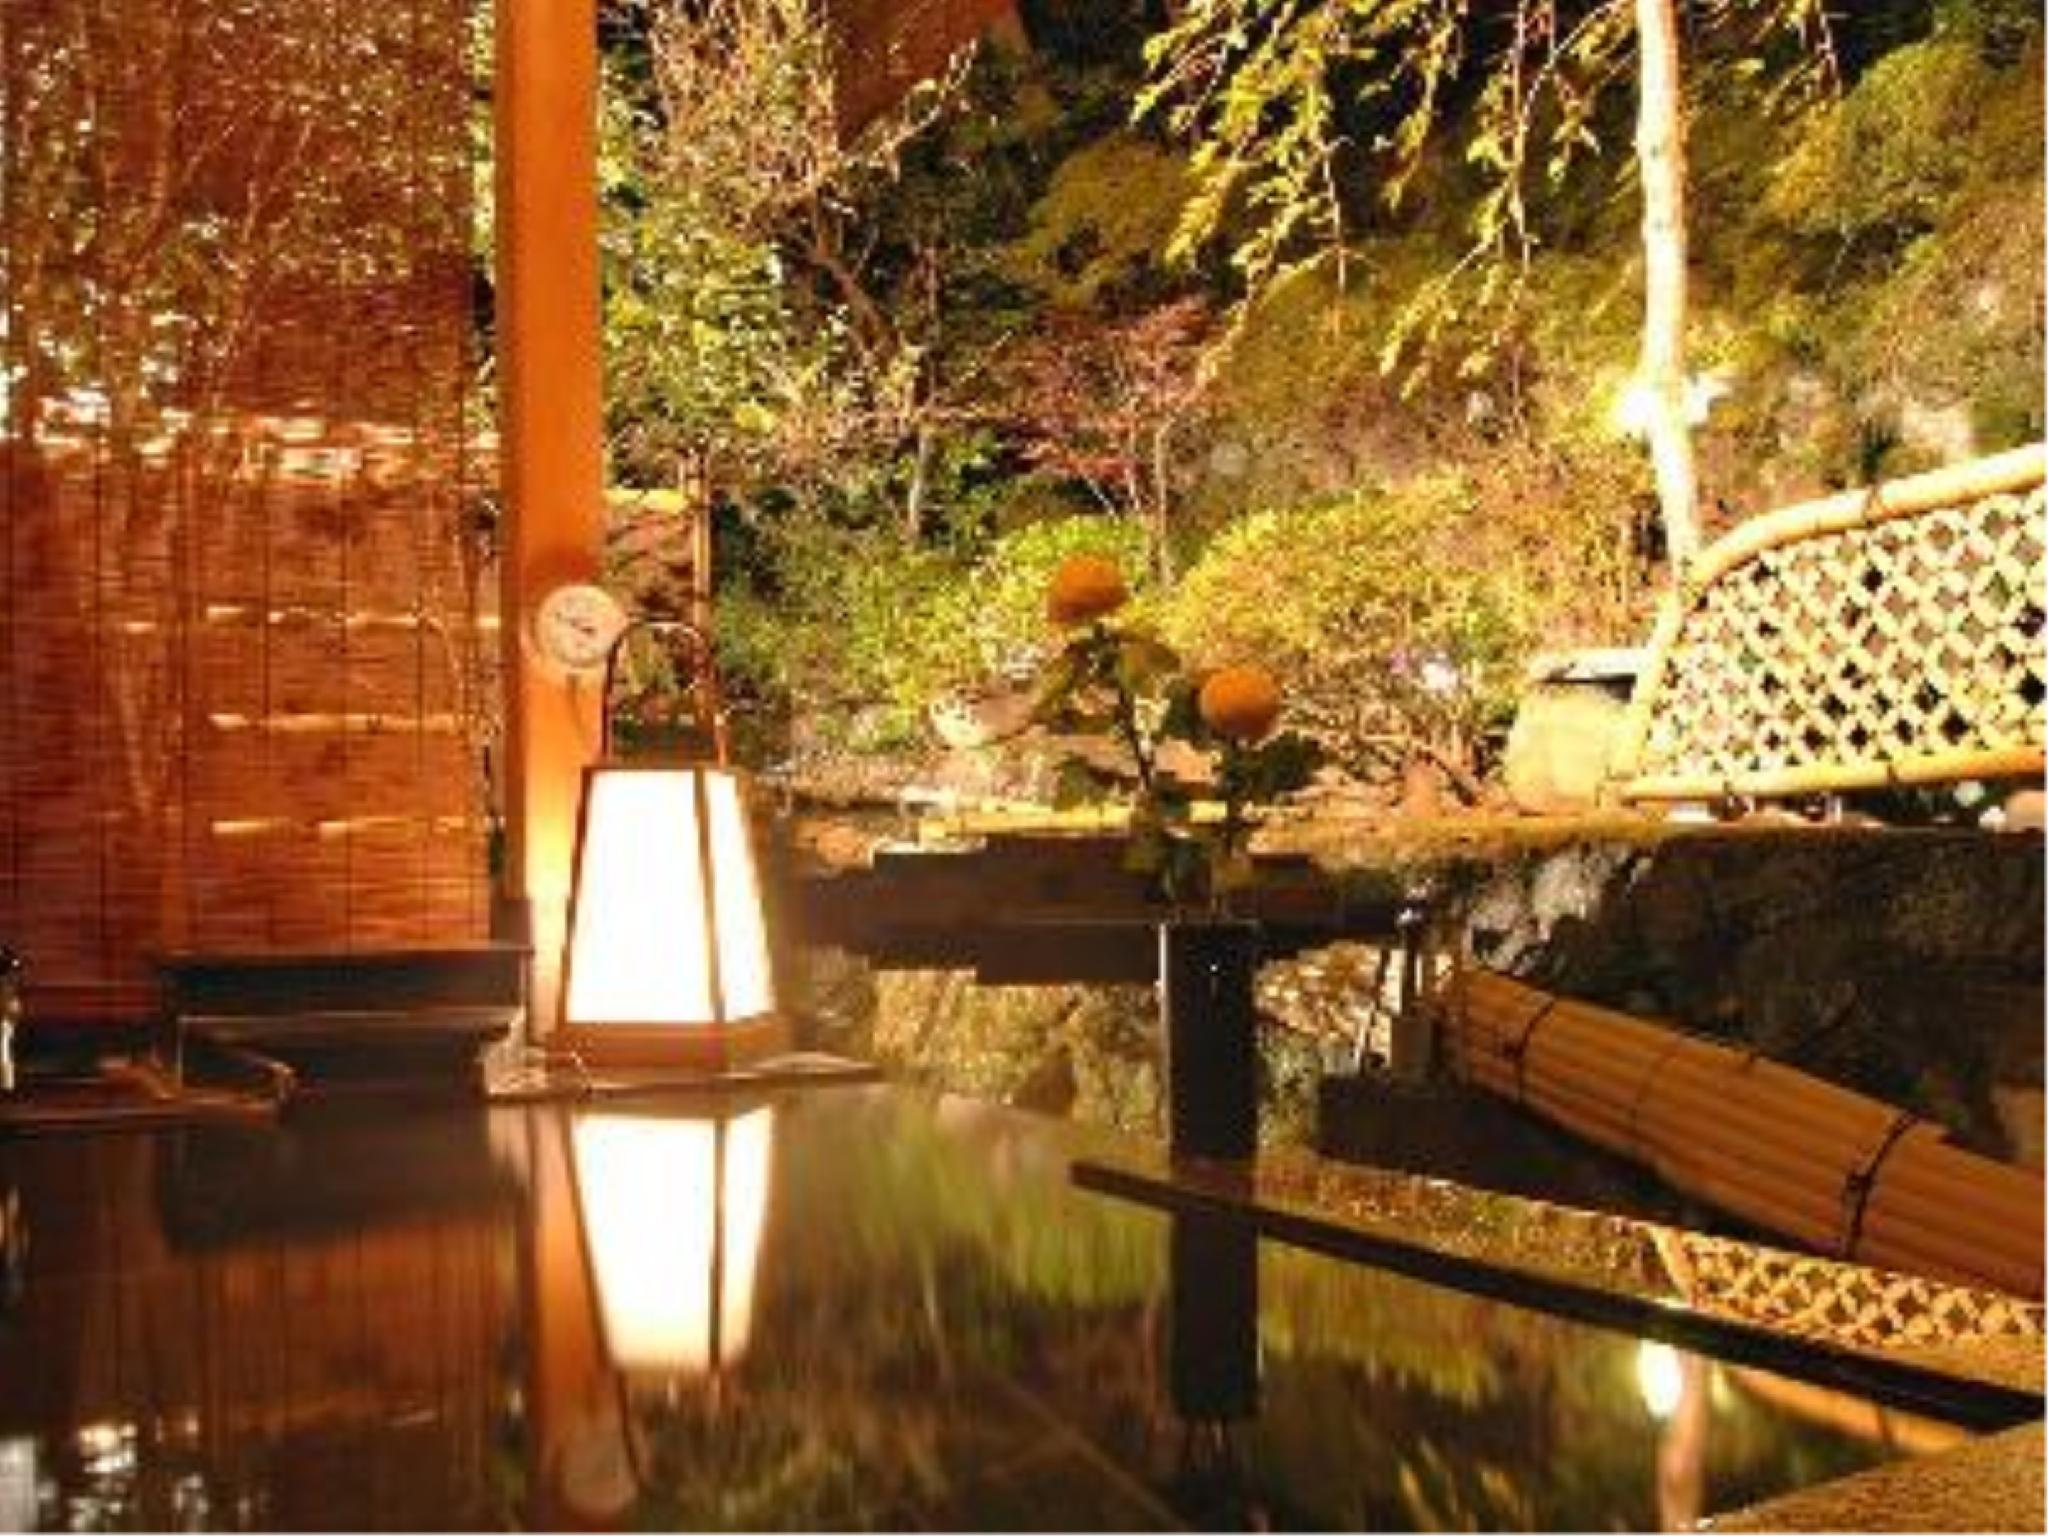 다다미 객실 또는 특별실 (Japanese-style Room + Japanese-style Room with Open-air Hot Spring Bath)